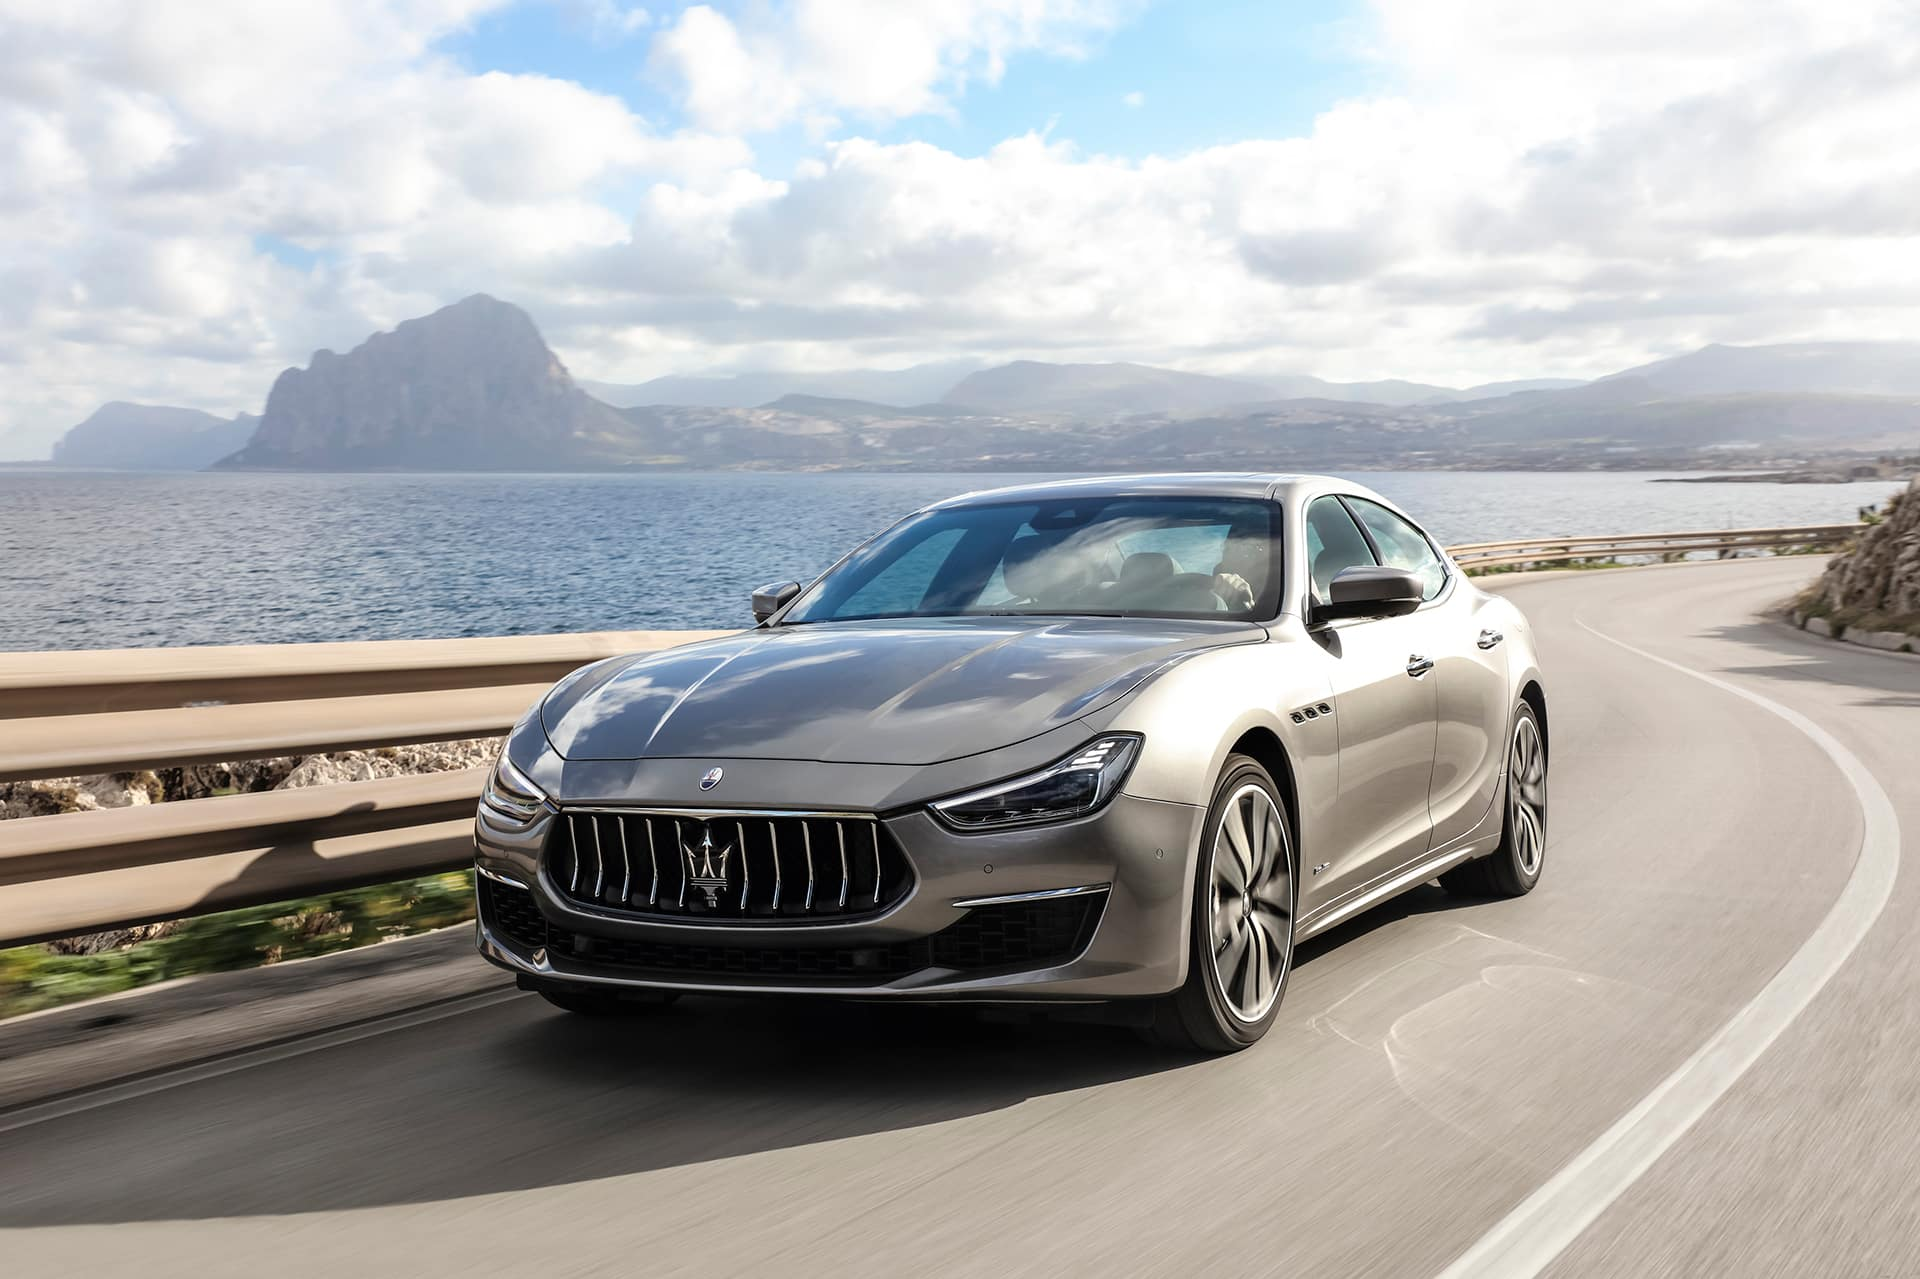 2020 Maserati Ghibli driving on mountain road | Bennett Maserati of Allentown is a Car Dealership near Wescosville PA in Allentown